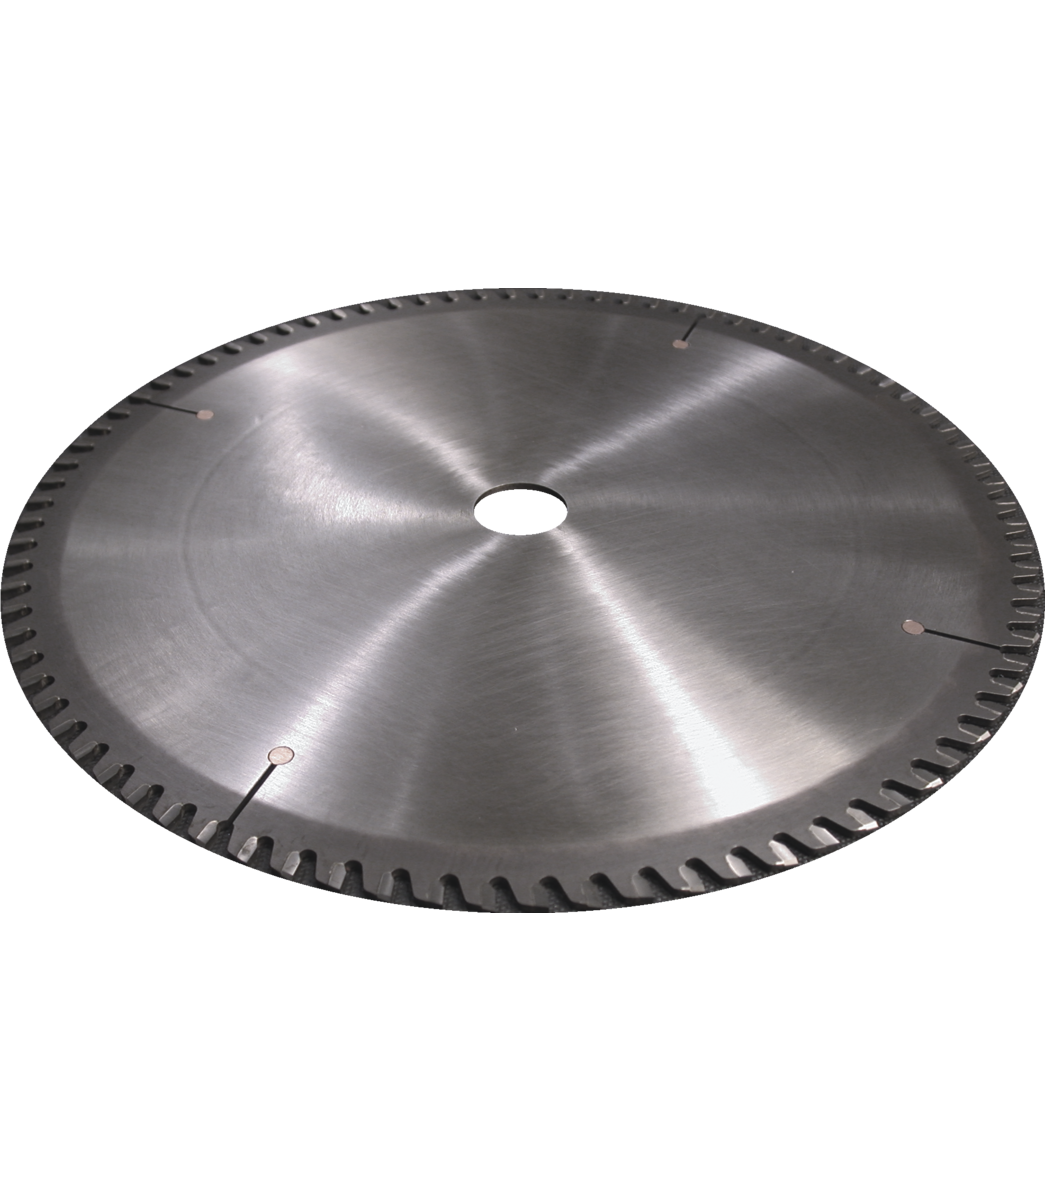 Non-Ferrous Carbide Circular Saw Blade 350mm x 32mm x 3.4mm x 84T For J-CK350-2/4K